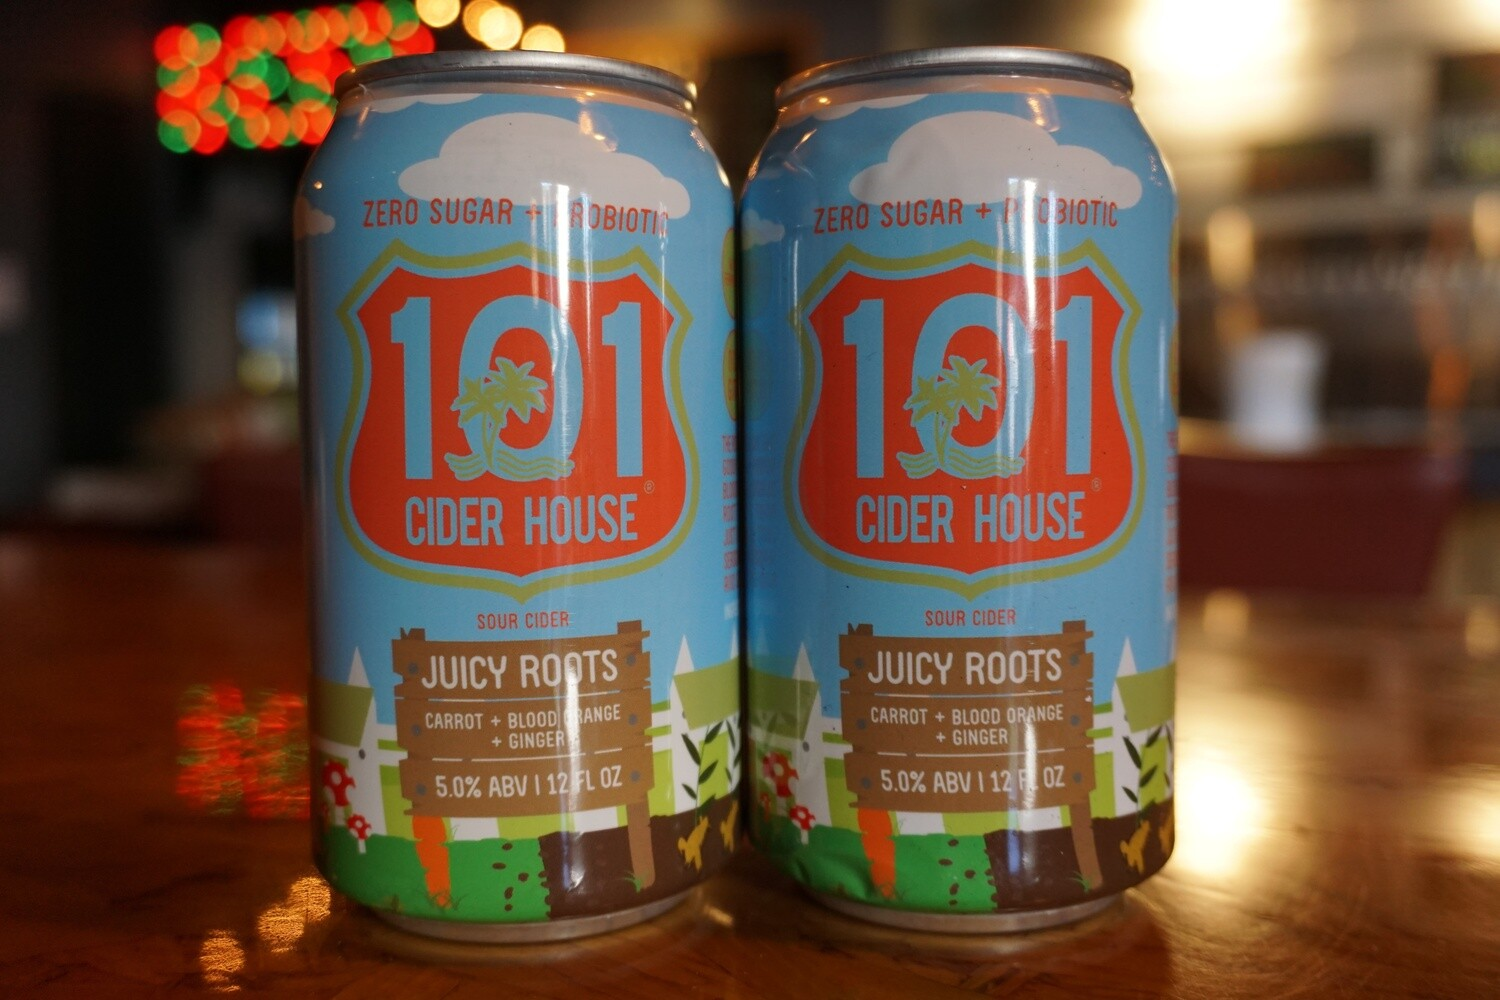 101 Cider Juicy Roots